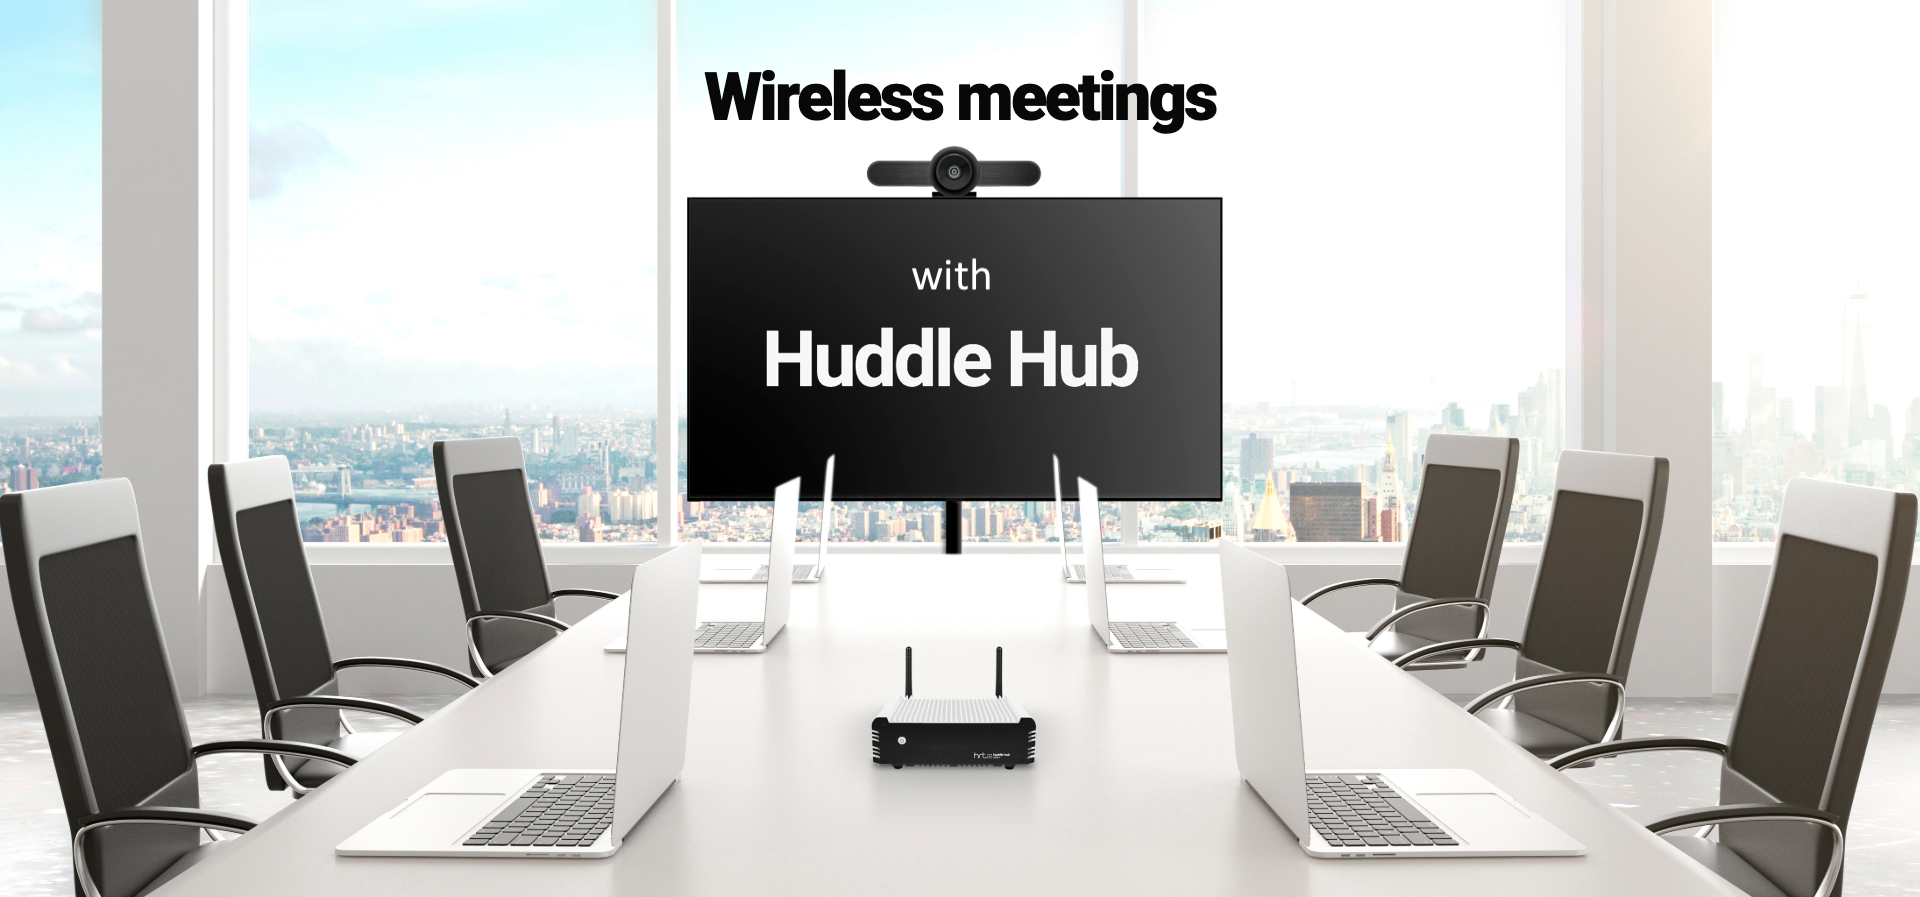 Intermedia-CS seals distribution deal with Huddle Room Technology